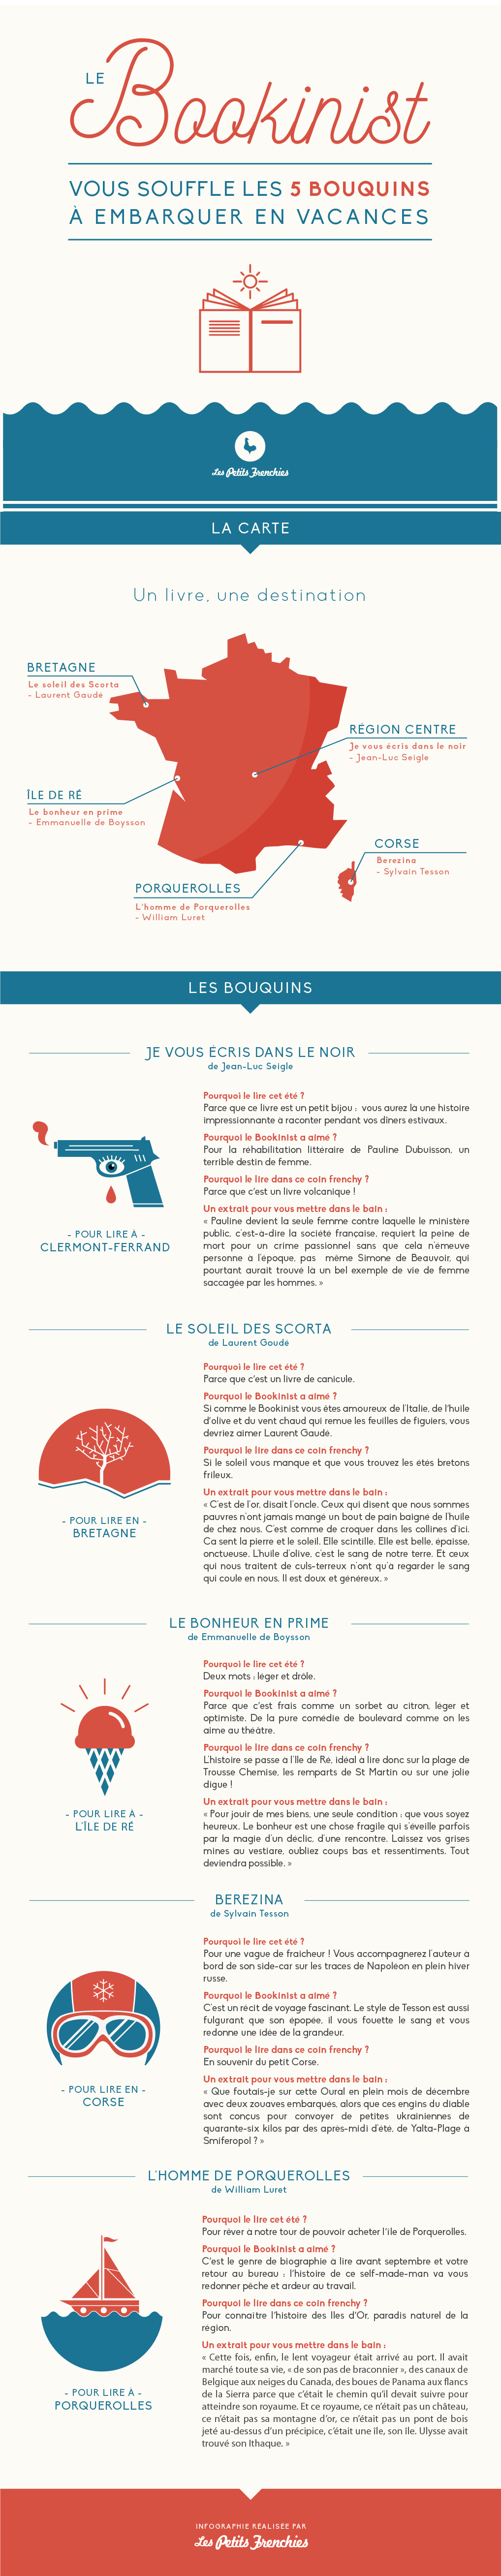 BOOKINIST-infographie-01